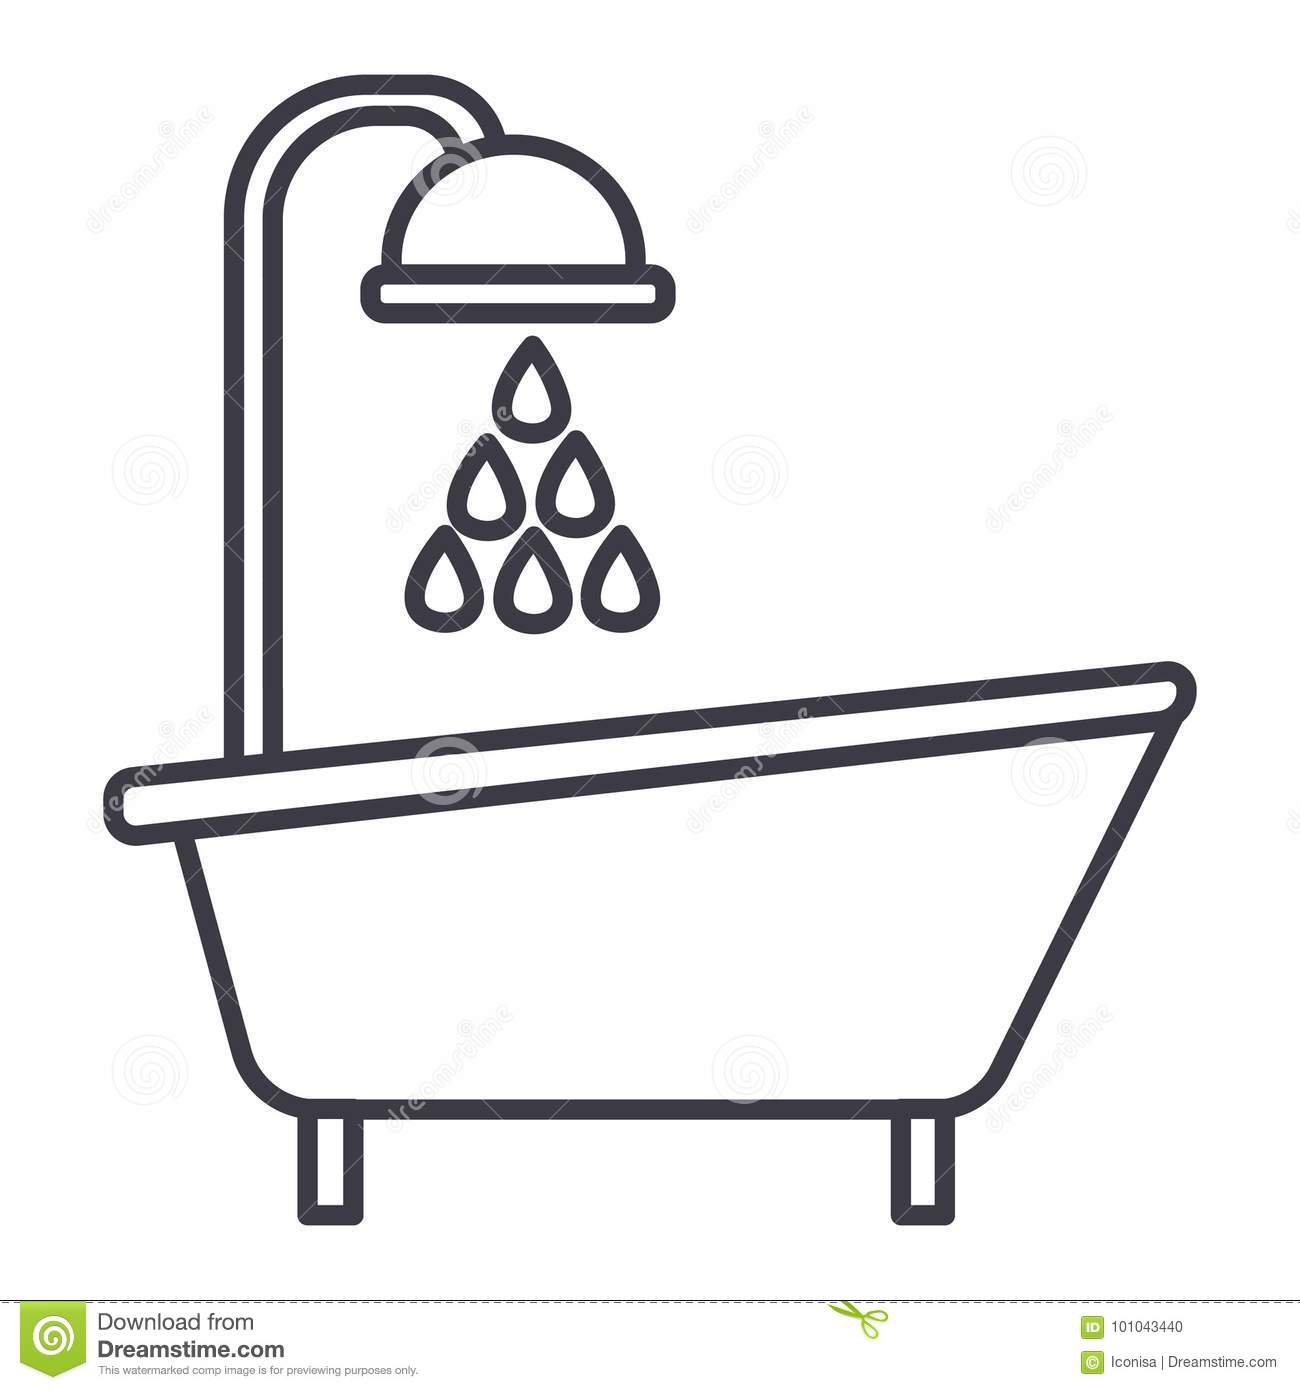 Bathroom Clip Art Black And White: Bathtub Shower Vector Line Icon, Sign, Illustration On